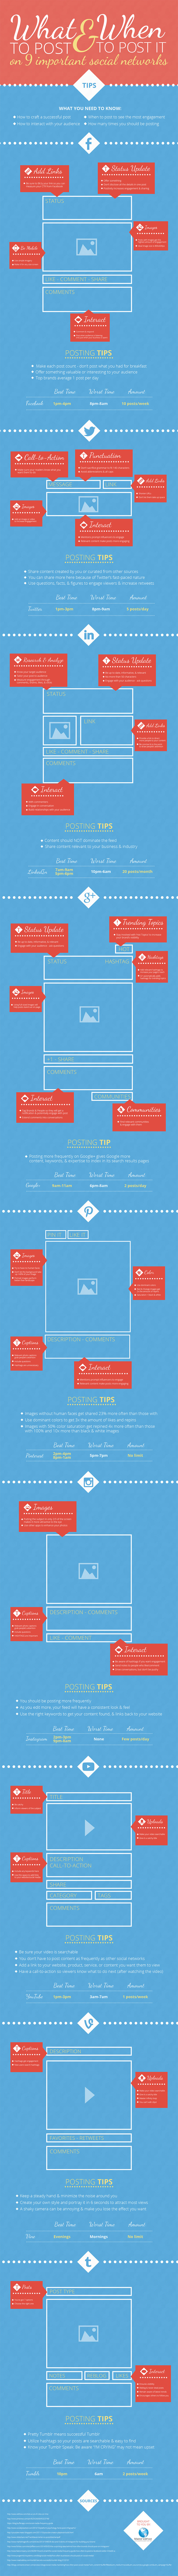 Social Media Updates Infographic